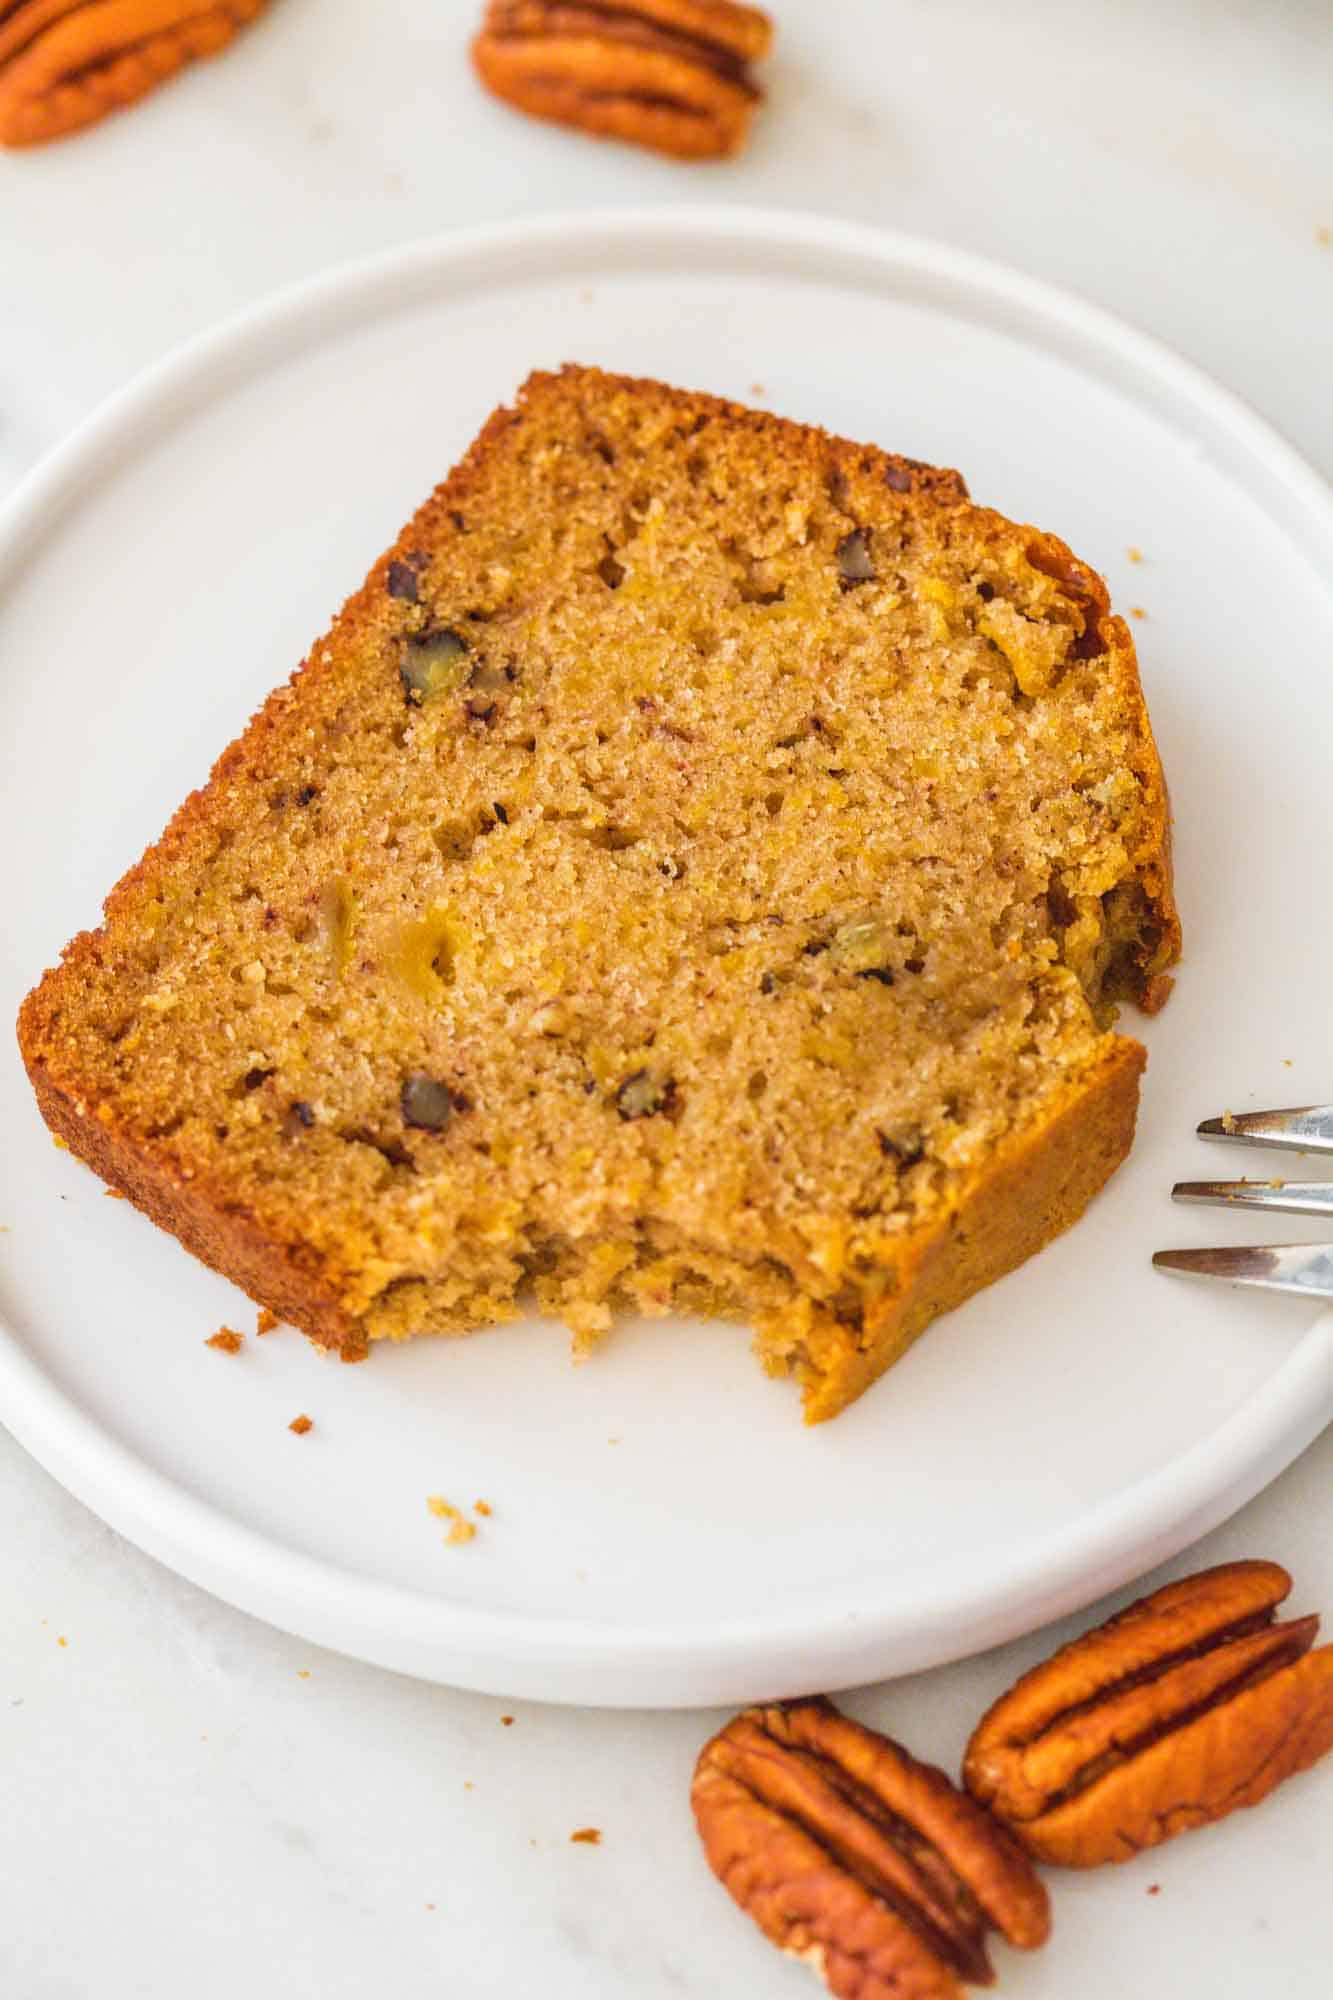 A slice of sweet potato bread served on a small white plate